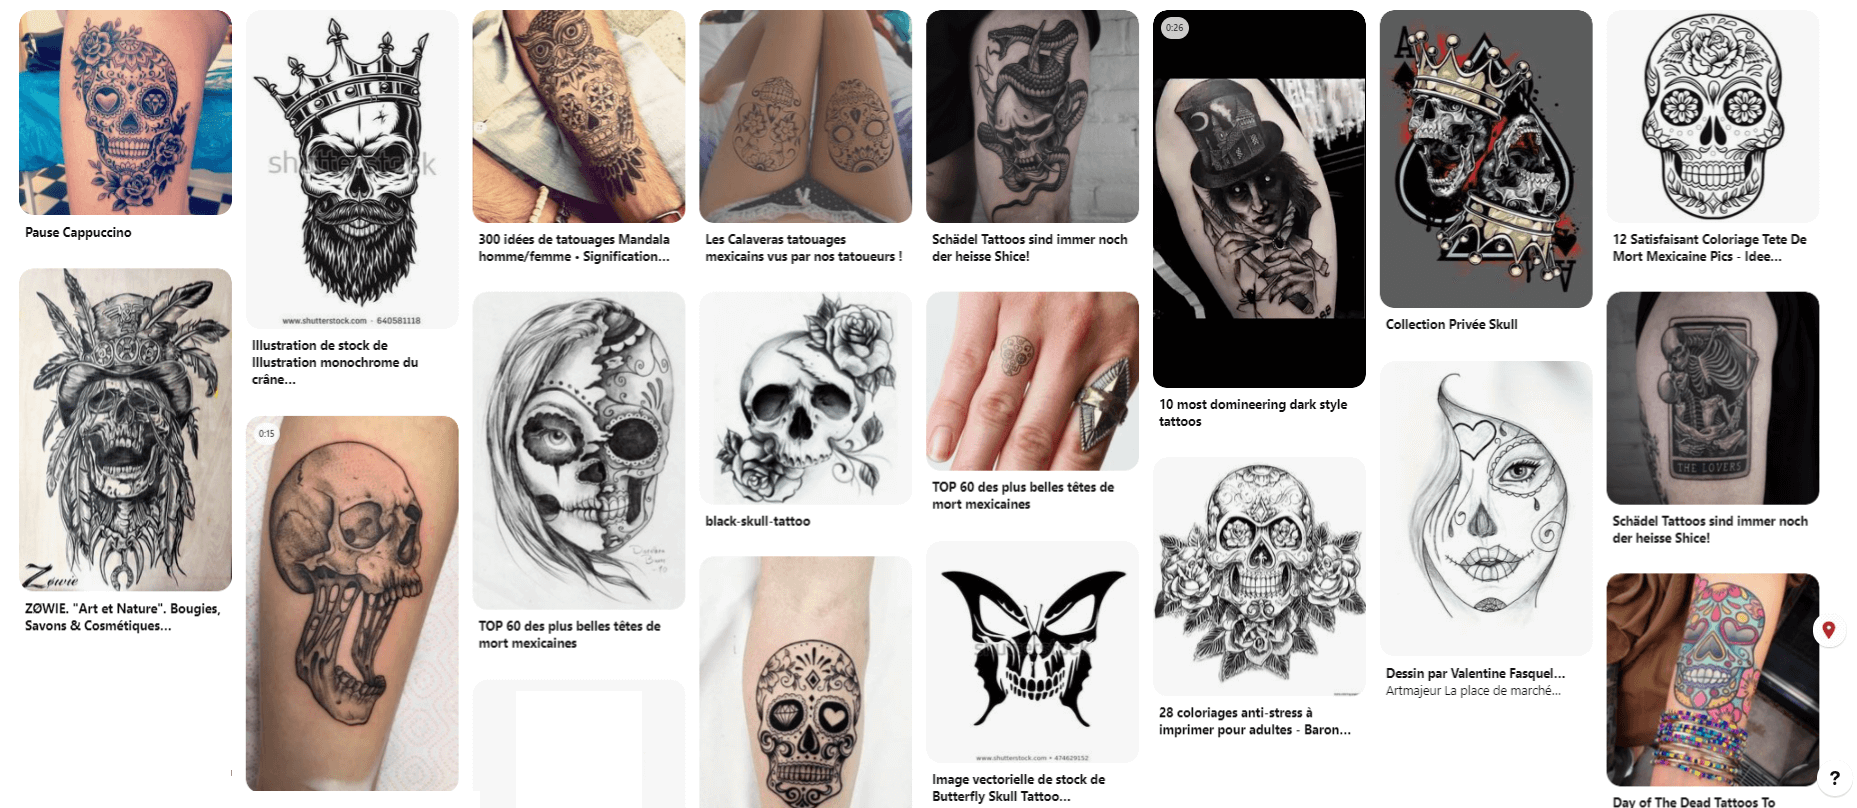 calaveras tattoos